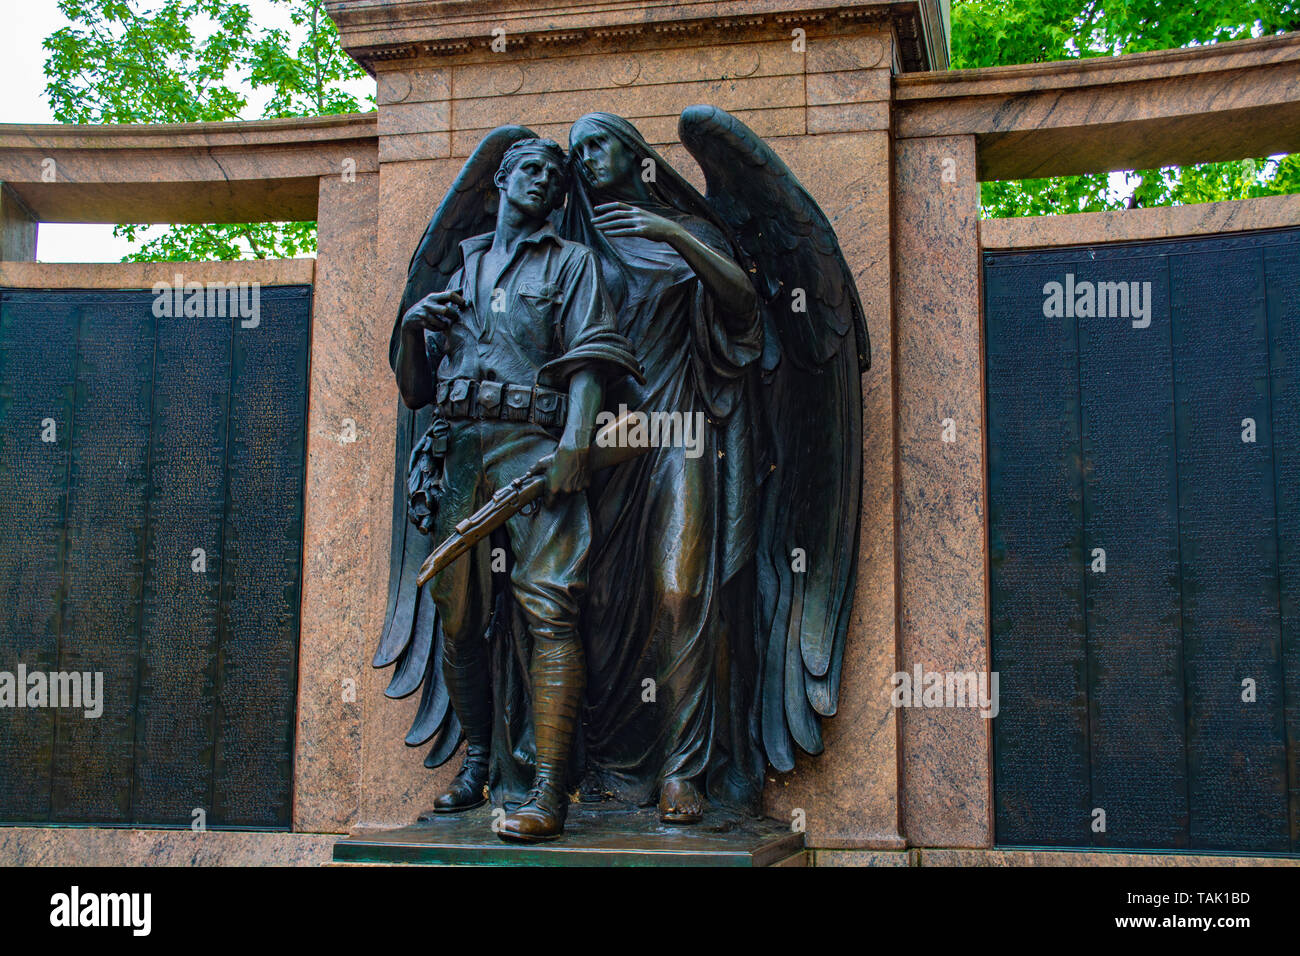 'World War One Memorial' By sculptor Henry Augustus Lukeman and architect Arthur D. Pickering Sculpted Bronze and Granite Exedra. Prospect Park, NY - Stock Image